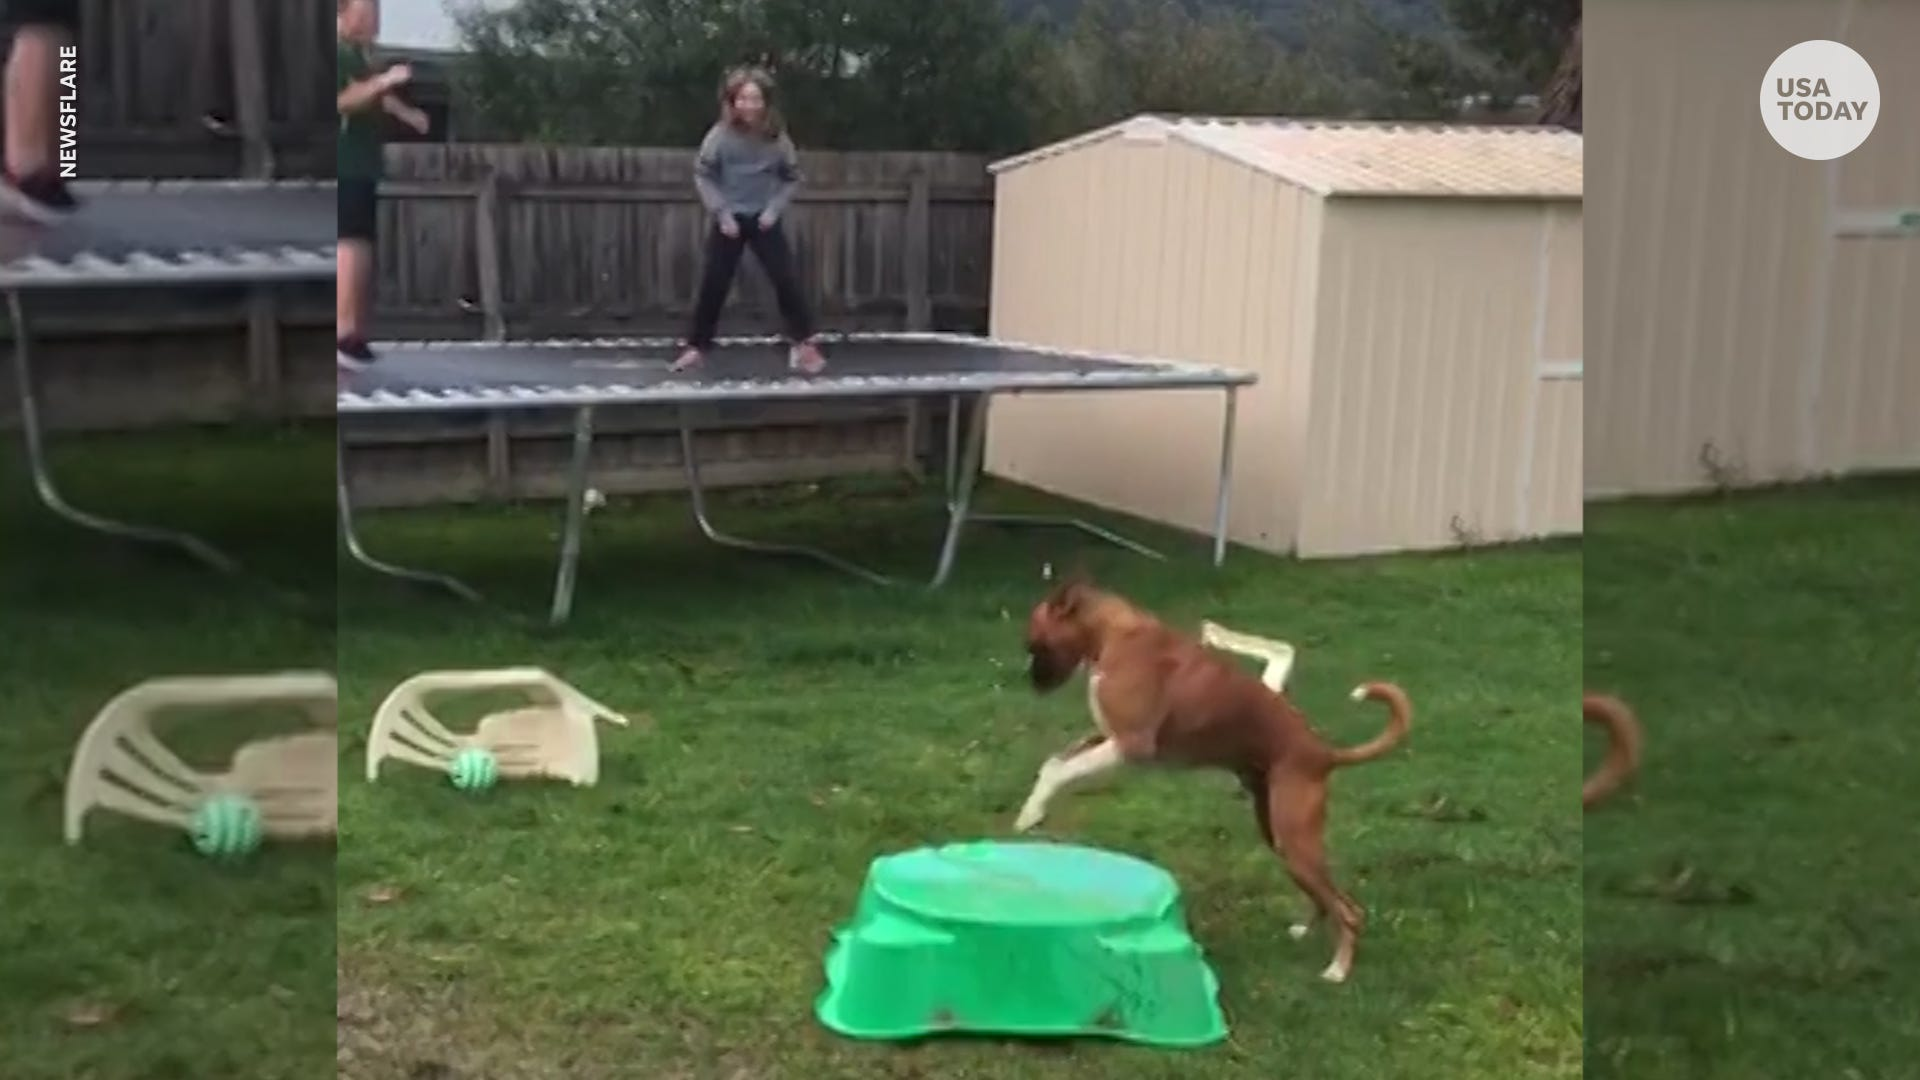 Hilarious boxer dog pretends to jump with laughing owners on trampoline